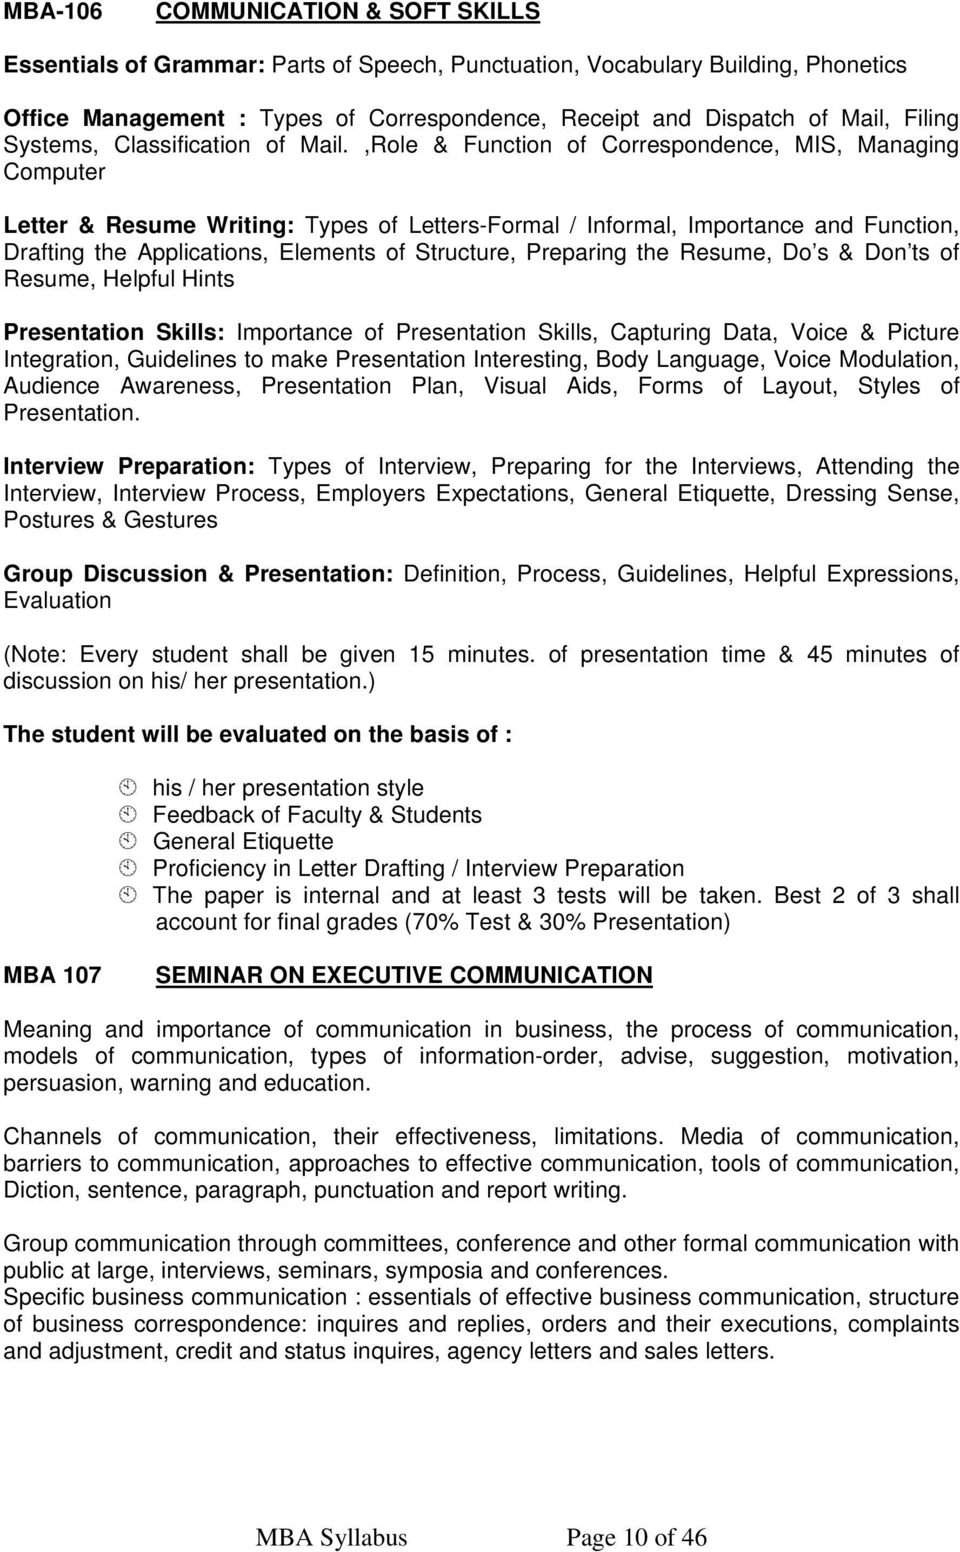 doc 4661 what does the communication part of a resume